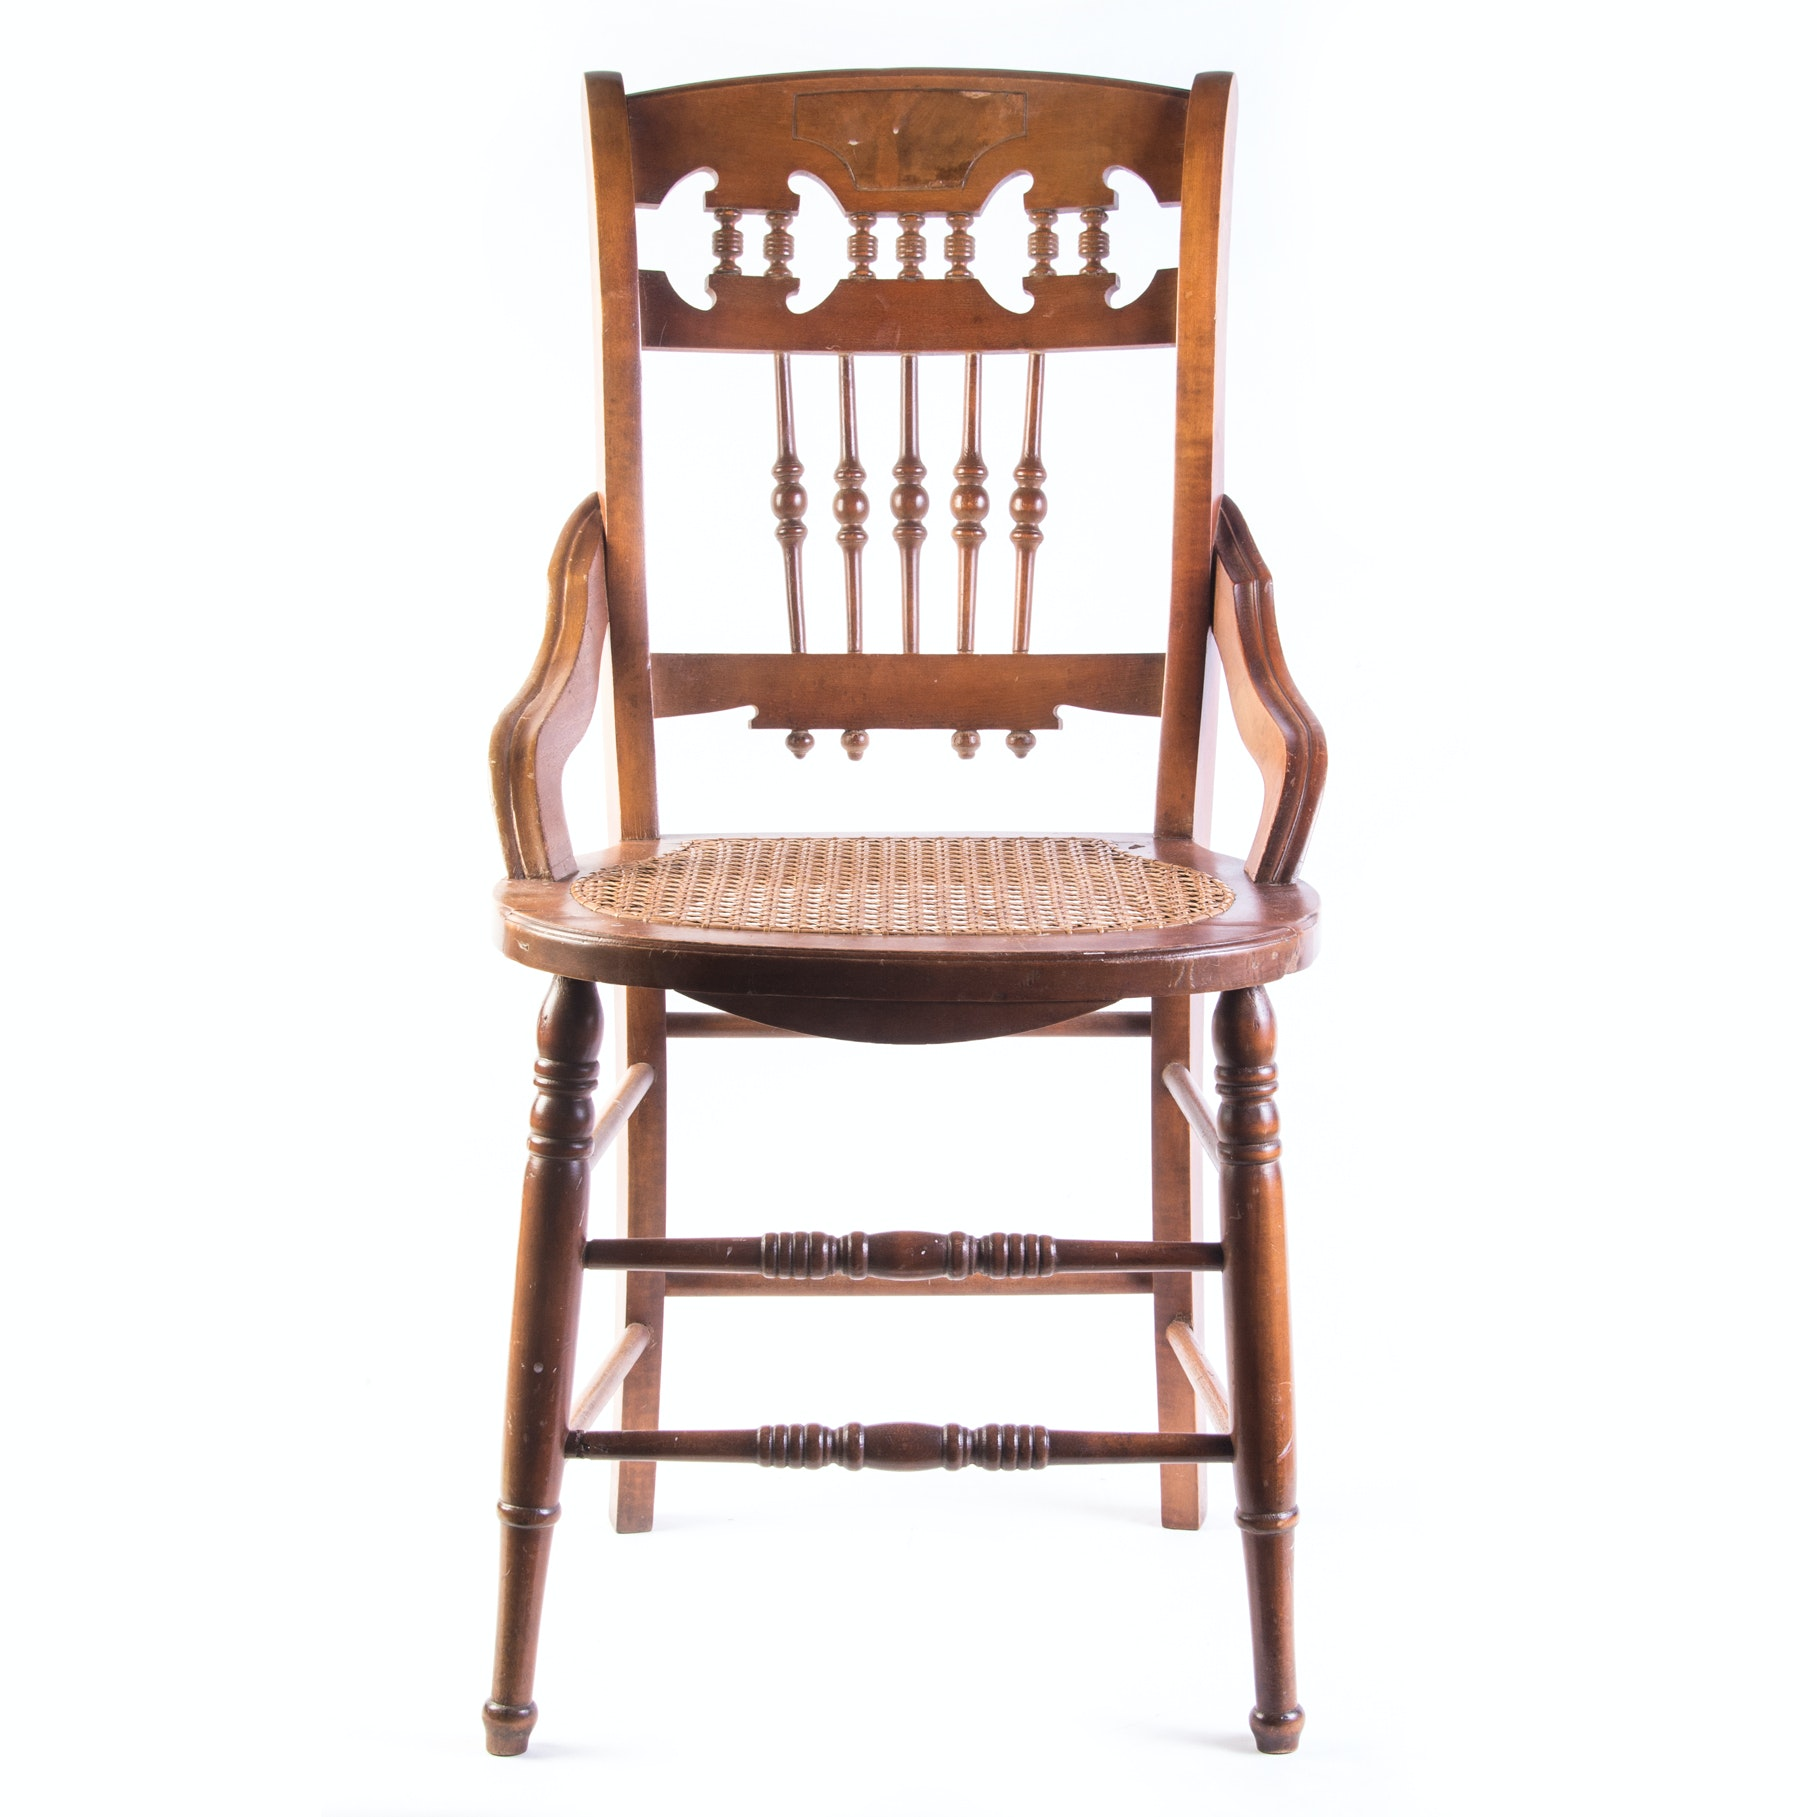 Victorian Eastlake Style Caned Seat Chair